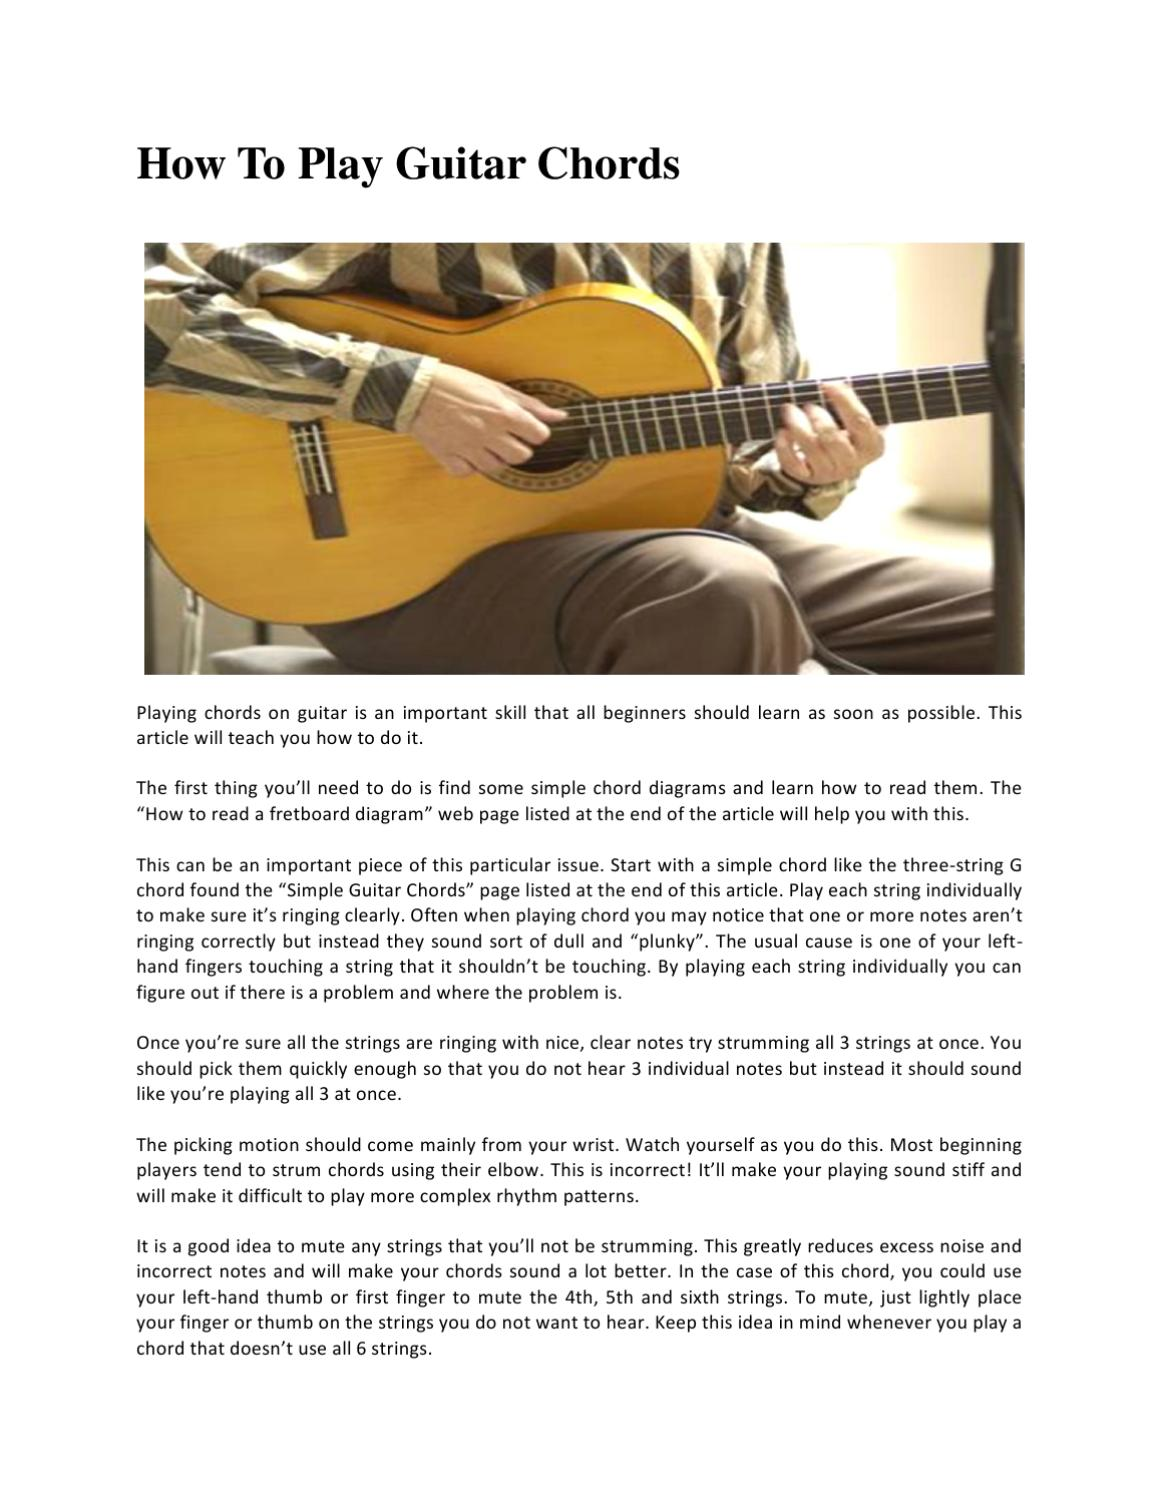 Tips How To Play Guitar Chords By Gilman William Issuu